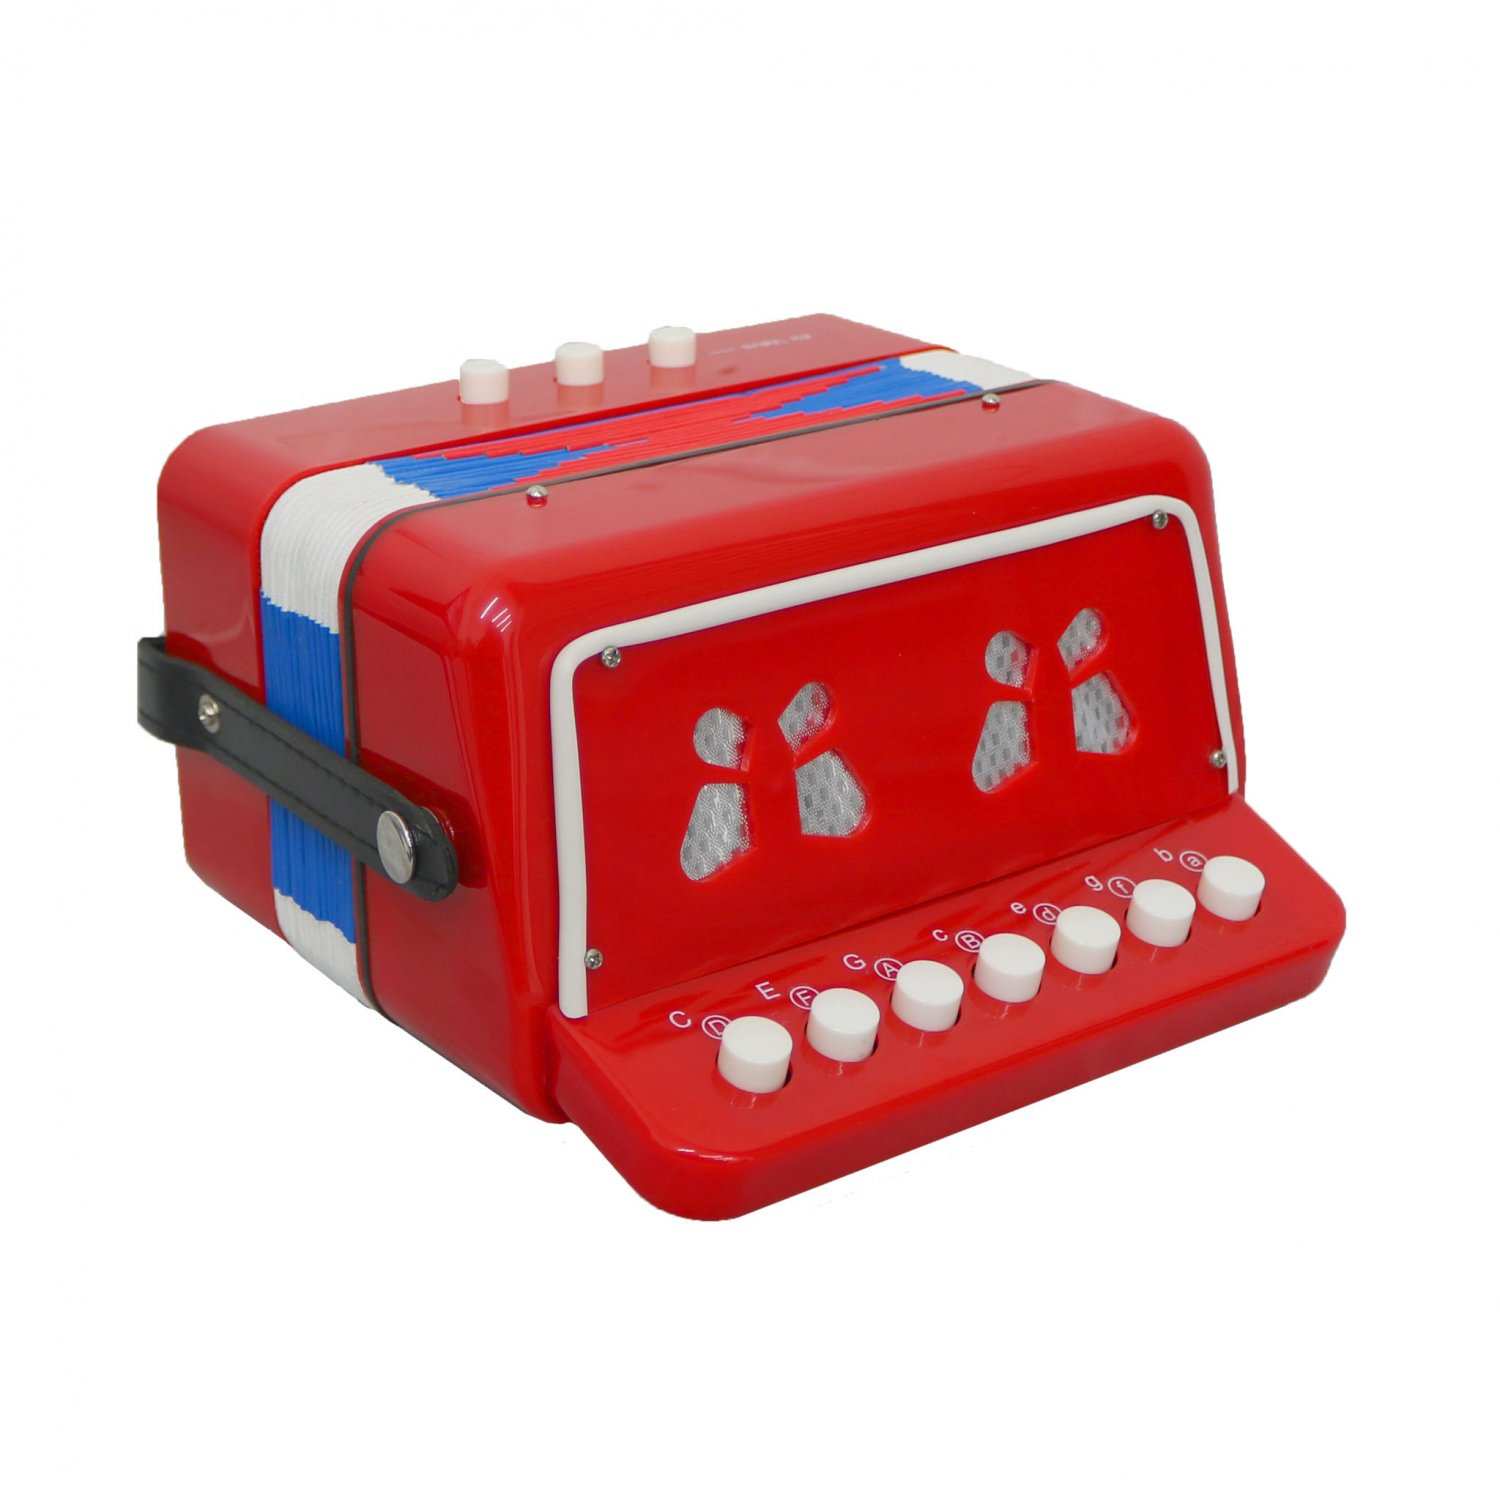 7 Keys 2 Bass Children's Red Toy Accordion Musical Instrument